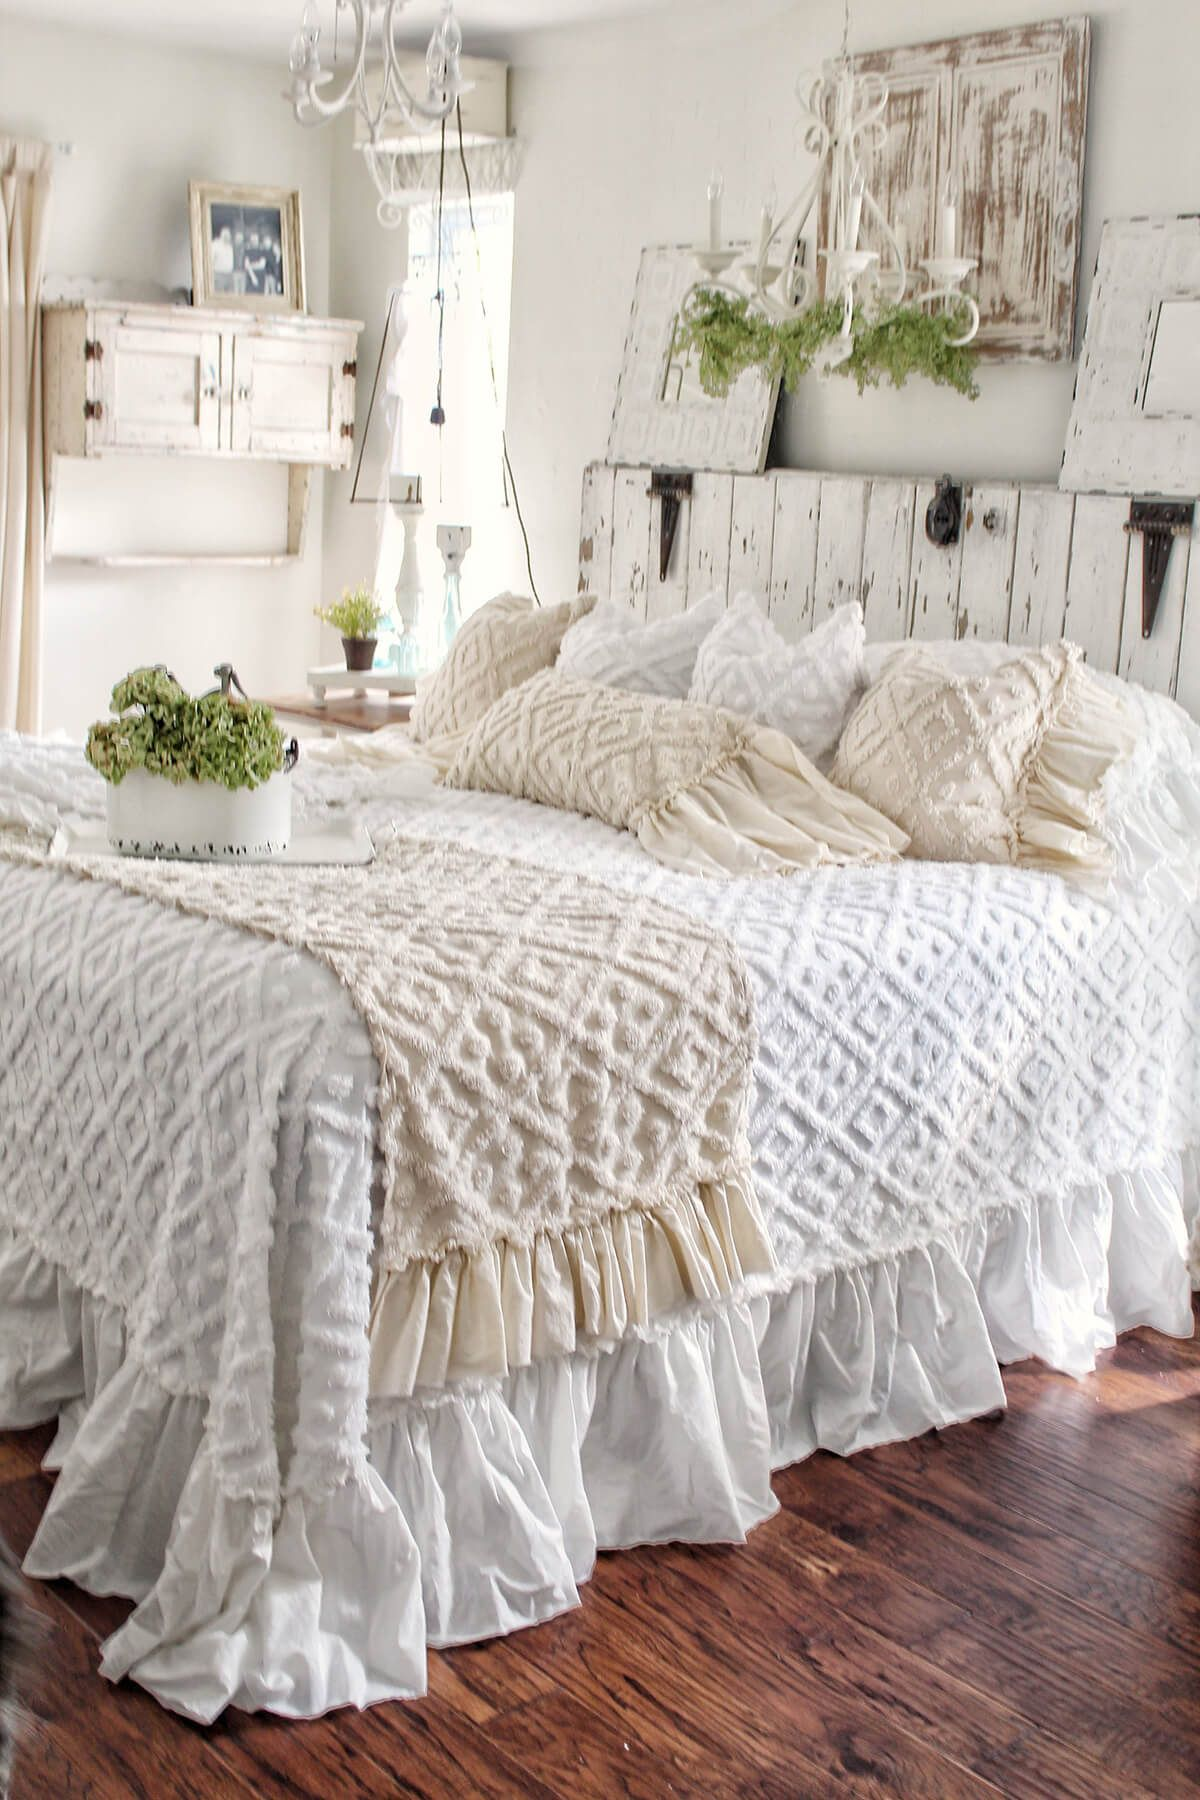 14 Fabulous Rustic Chic Bedroom Design And Decor Ideas To Make - Schlafzimmer Shabby